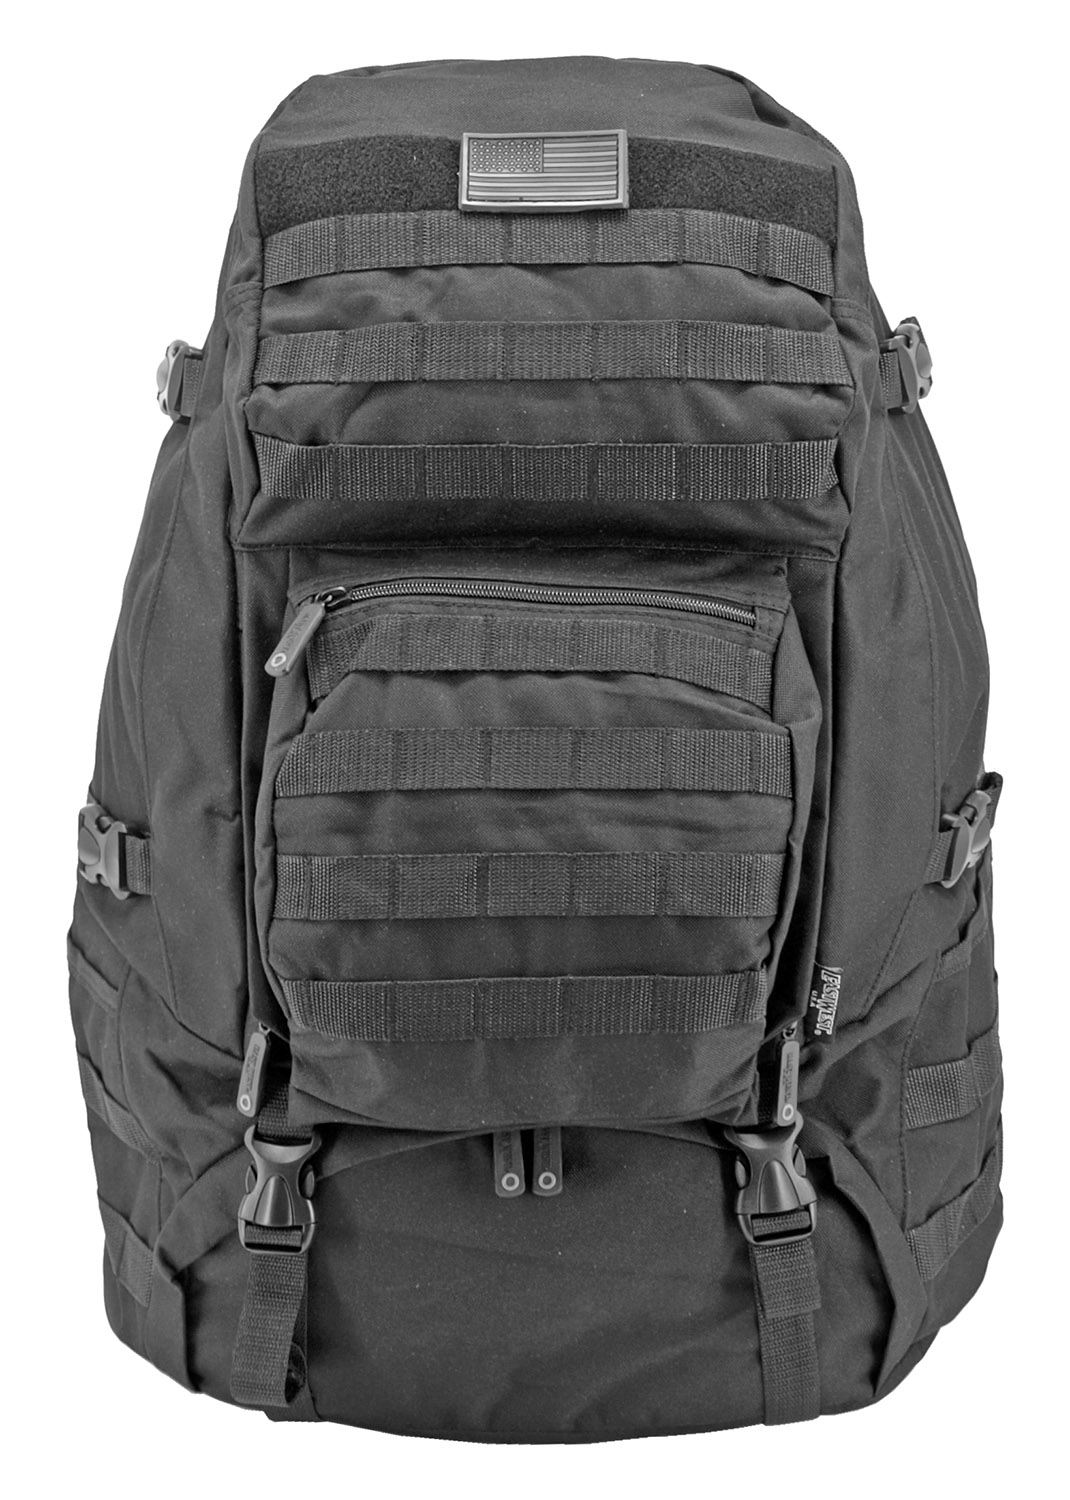 Large Tactical Readiness Pack - Black